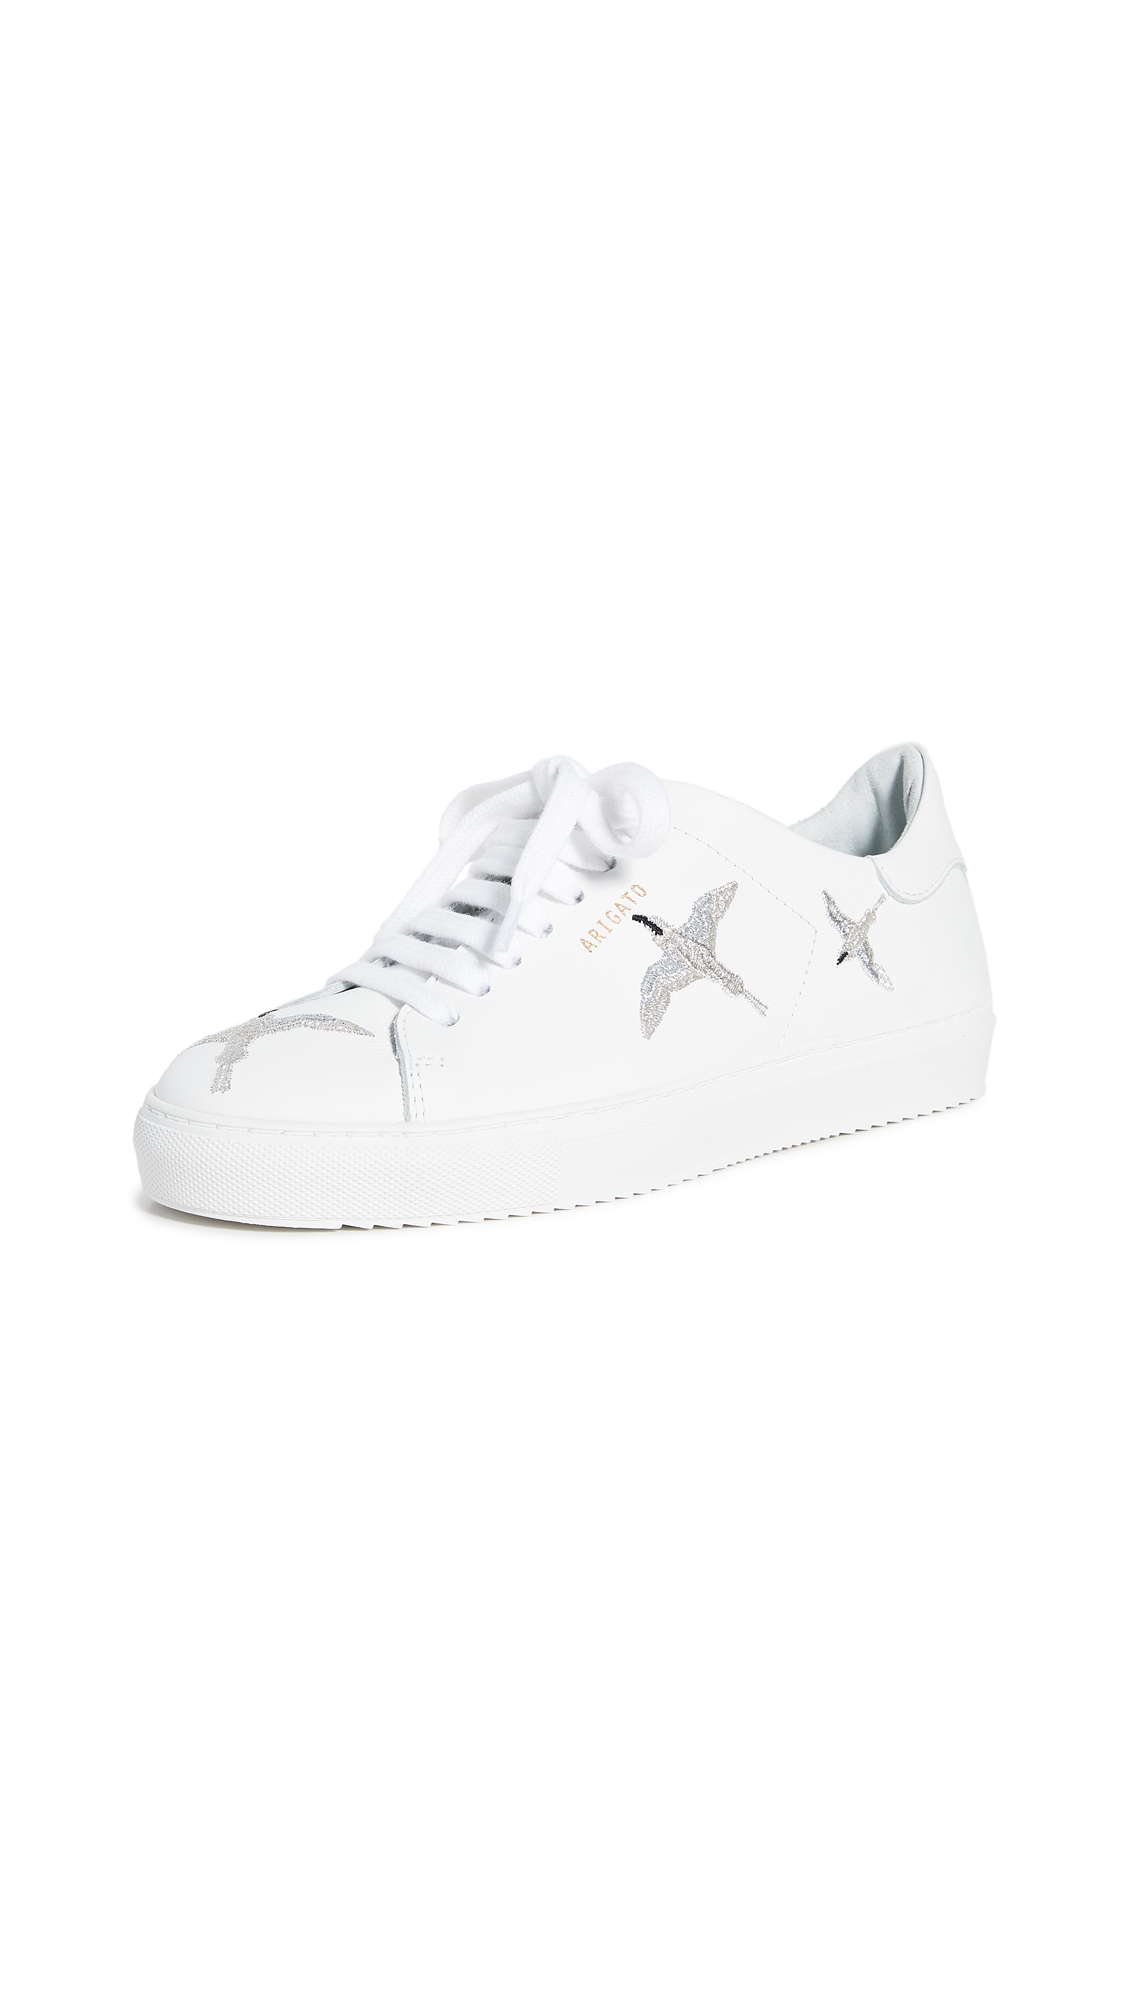 Axel Arigato Clean 90 Sneakers - White/Silver